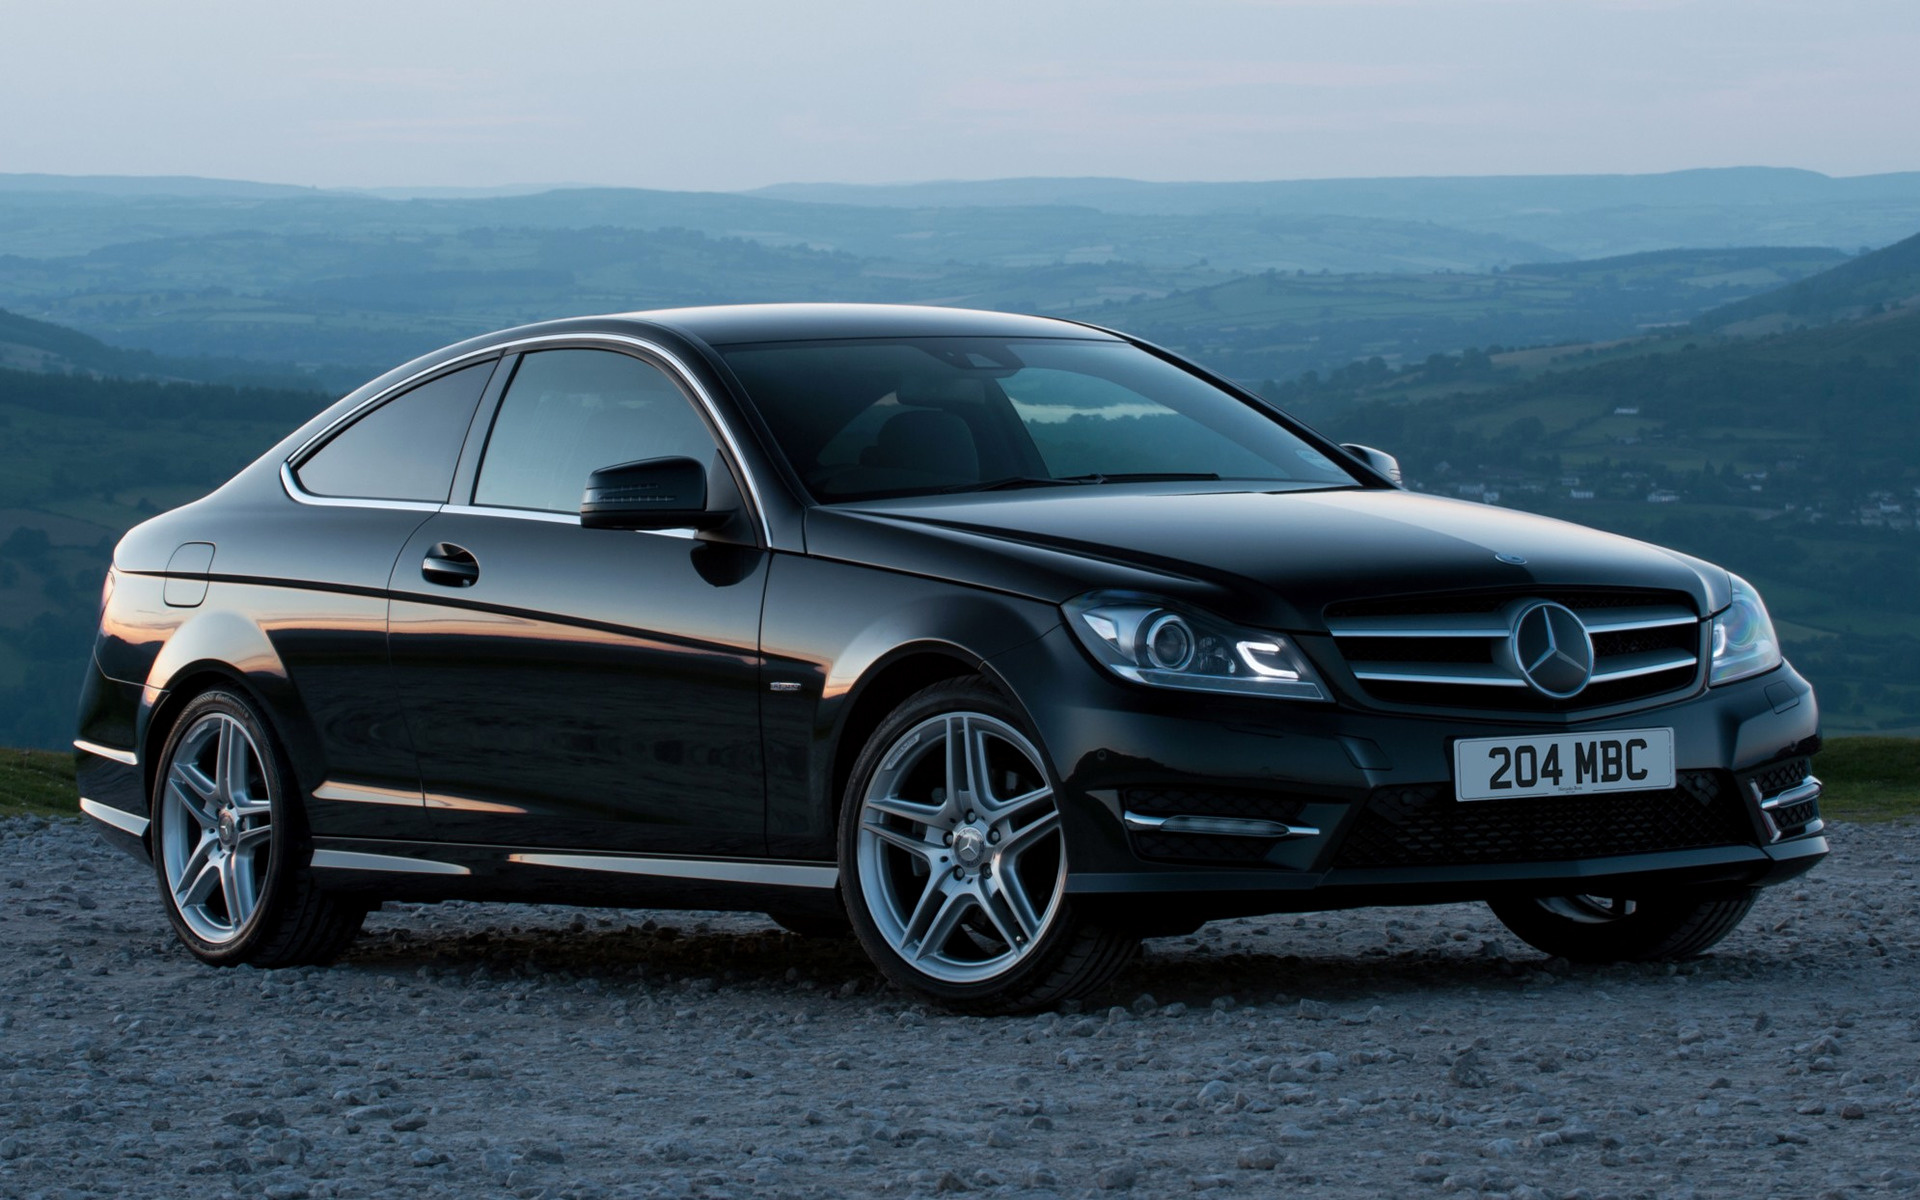 2011 mercedes benz c class coupe amg styling uk. Black Bedroom Furniture Sets. Home Design Ideas